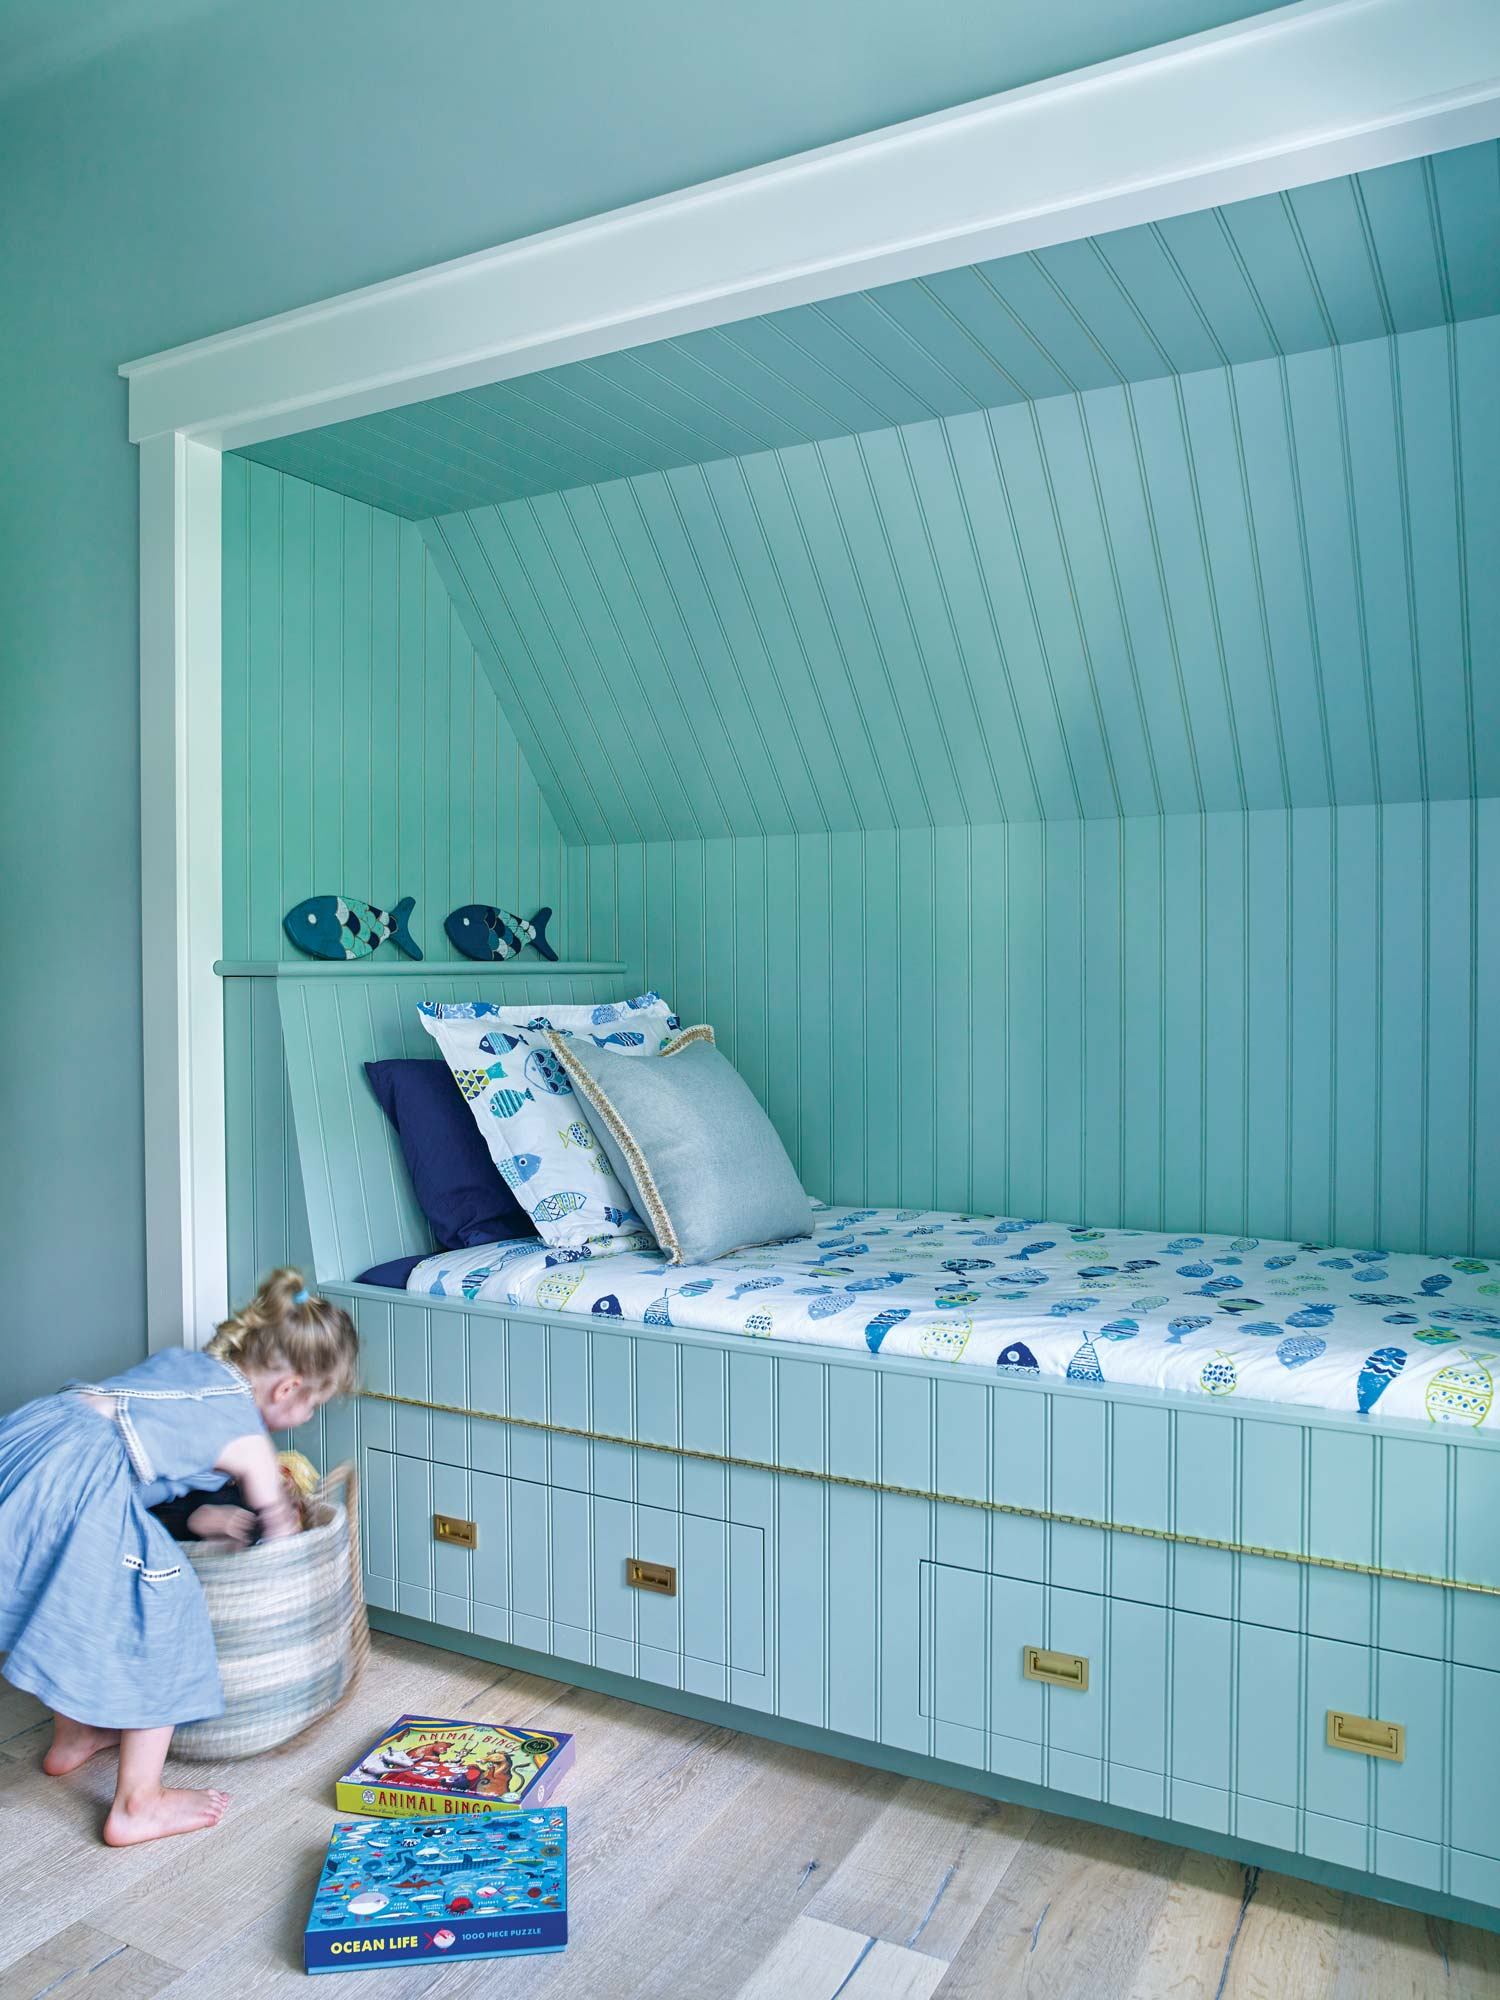 A bunk built out of space under the eave ends up giving the room a fun and funky nautical vibe.